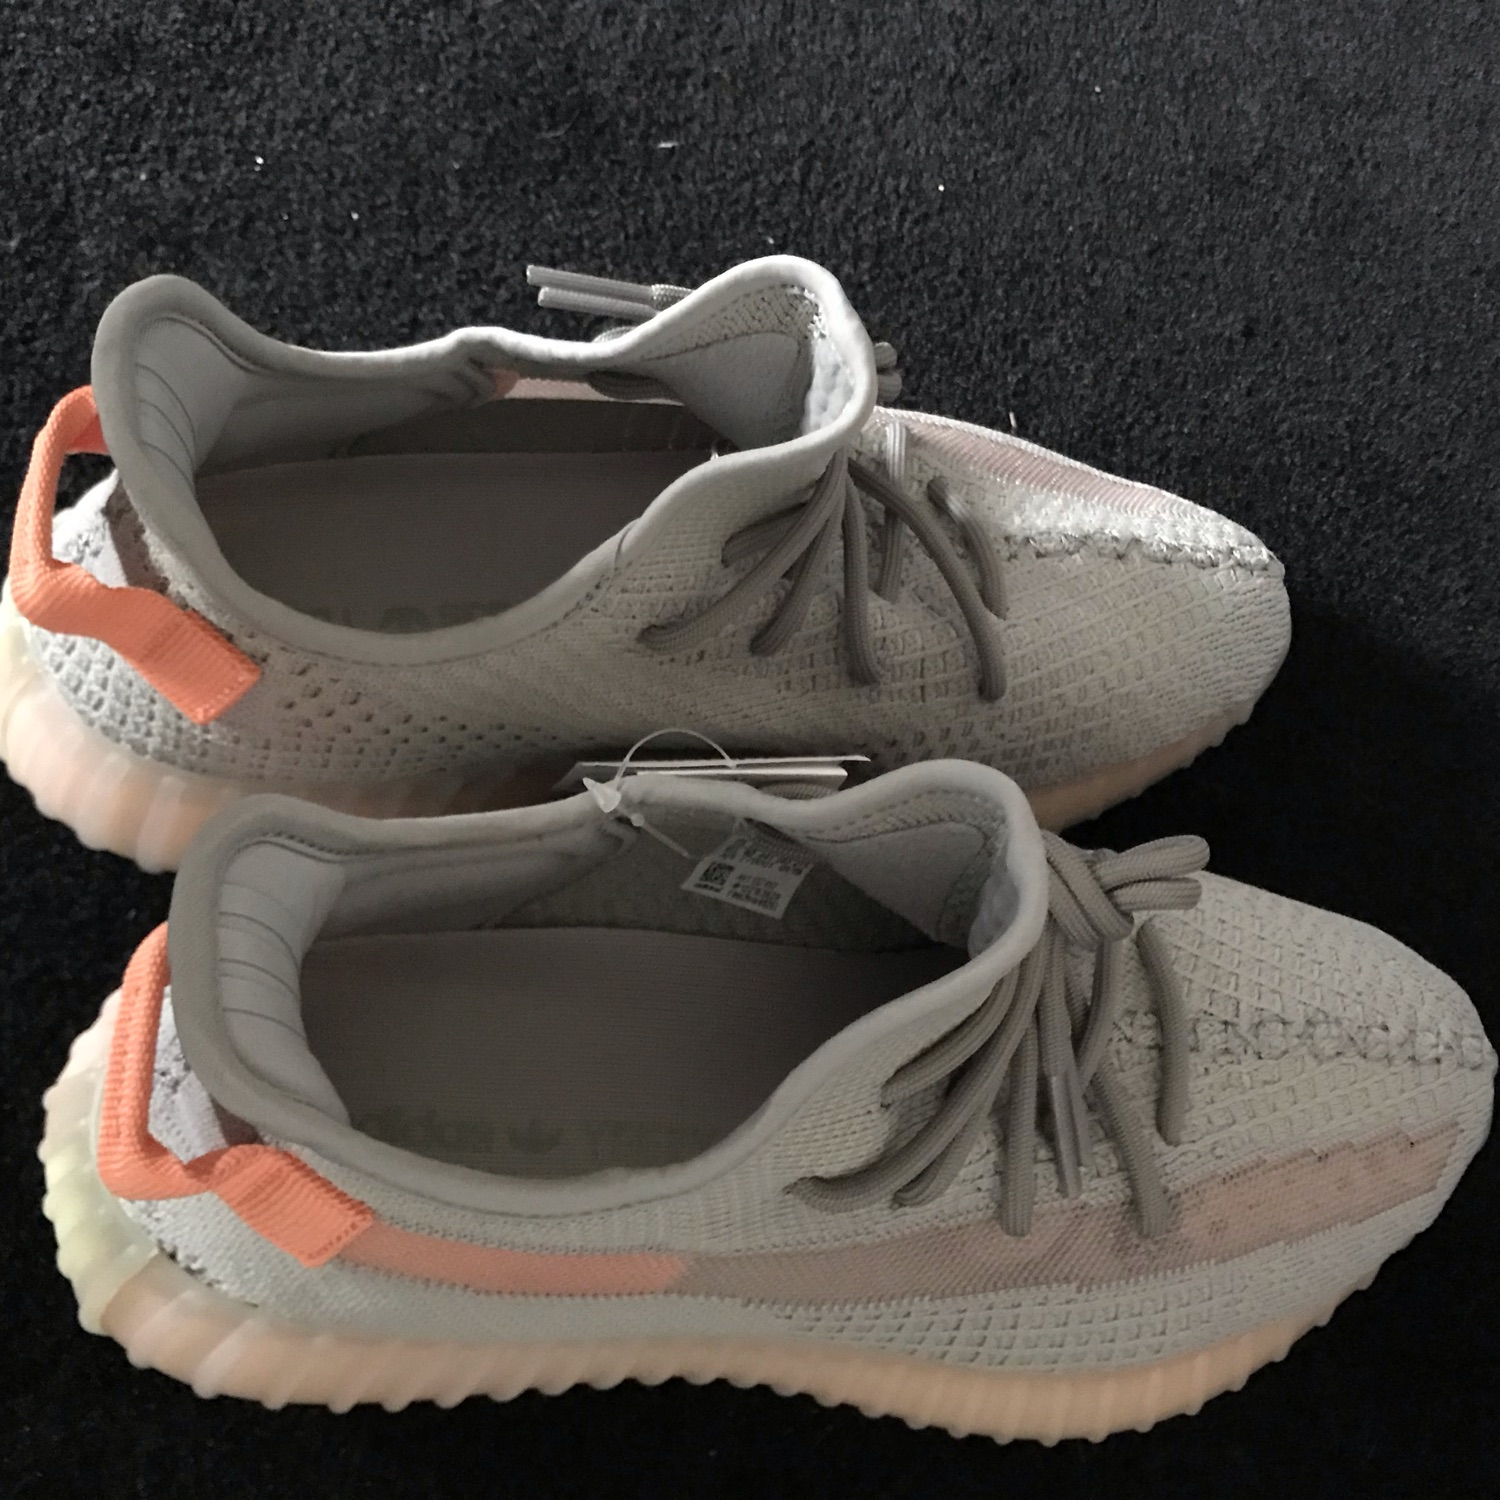 yeezy true form resell price